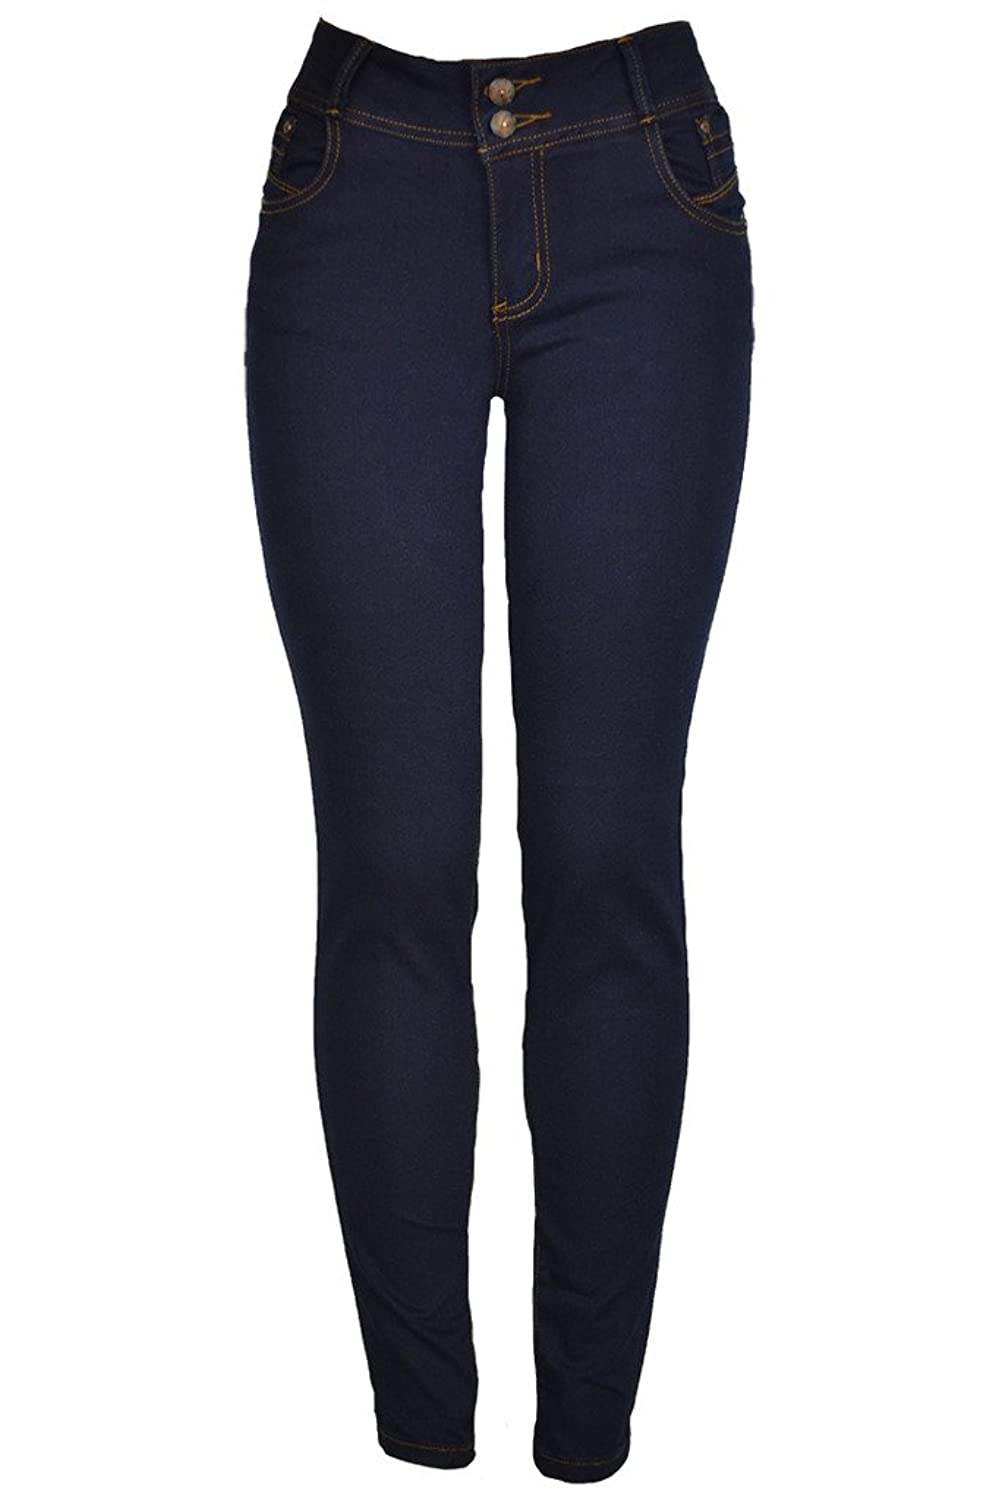 143Fashion Juniors Stretchy Mid-Rise Five Pocket Skinny Jeans